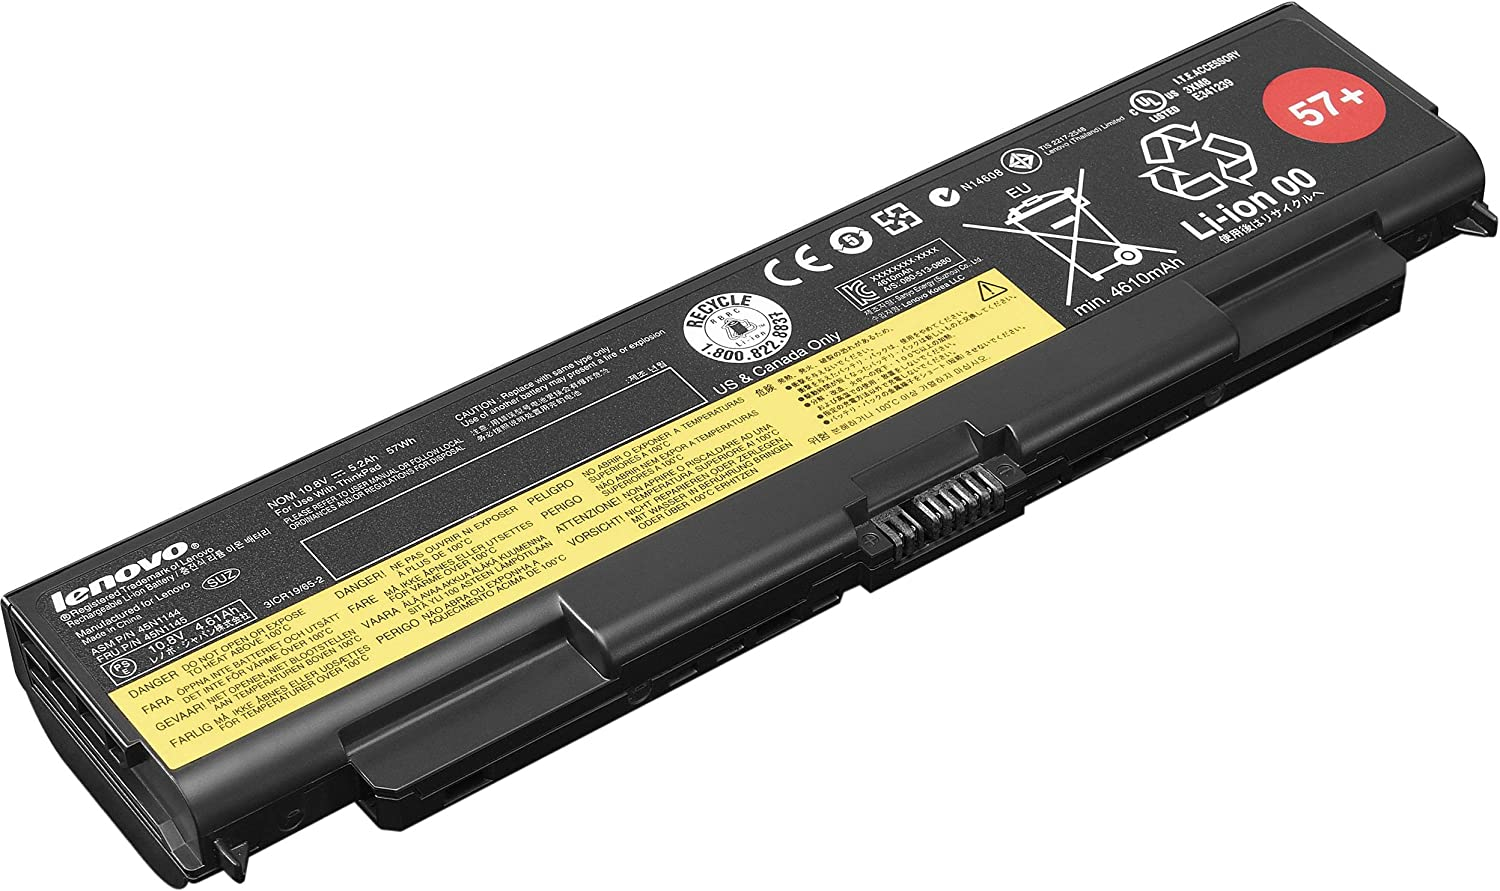 Lenovo Battery Fifty Seven Plus ( 0C52863 ) Factory Sealed Lenovo Originals for T440p, T540p, W540, W541, L540 , L440